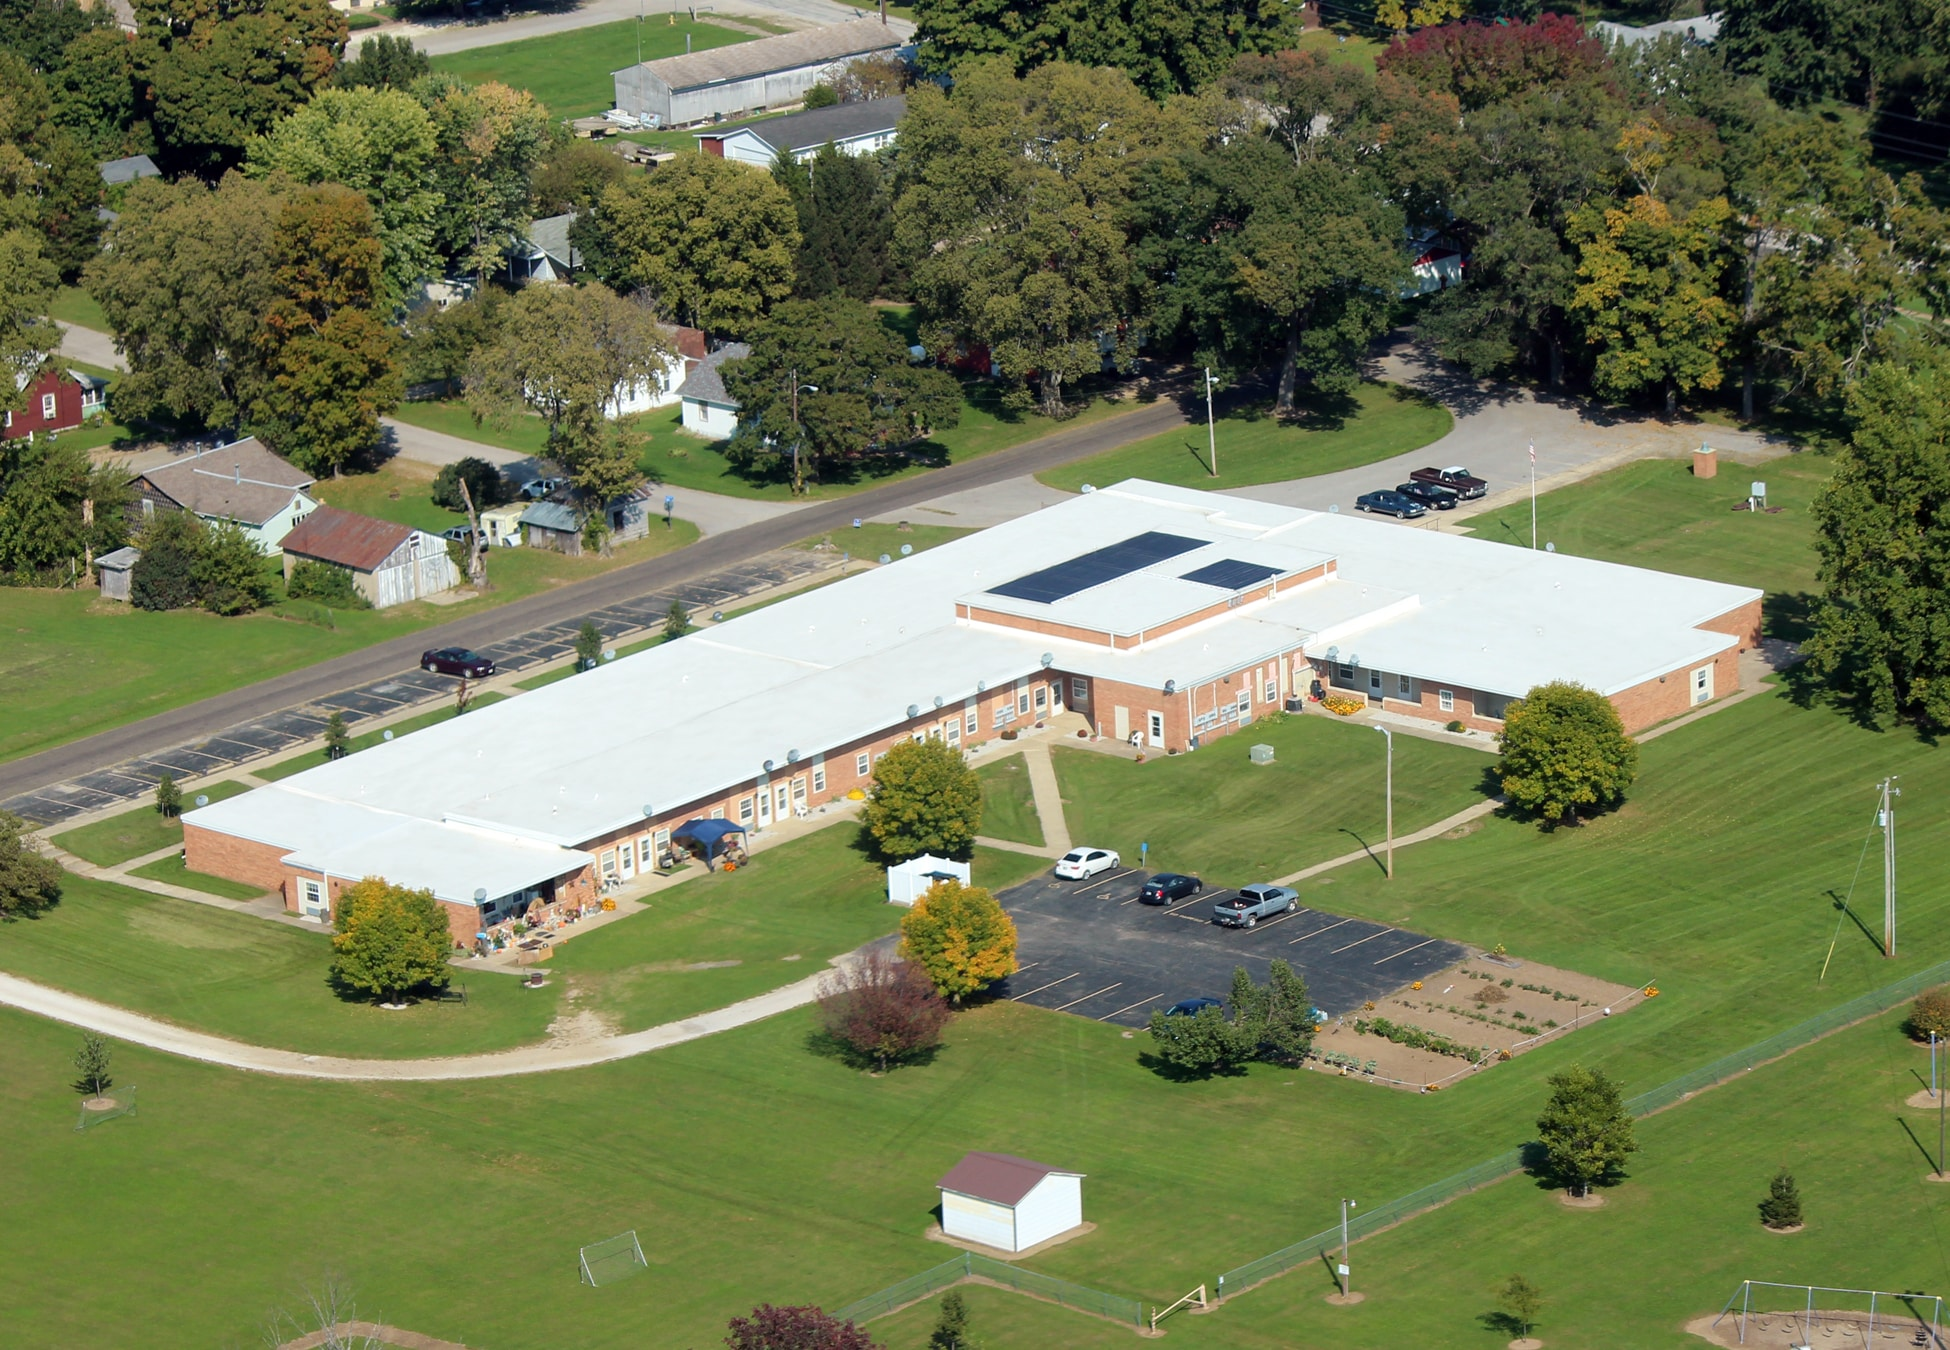 Commercial Flat Roof Contractors in Perrysville, Indiana